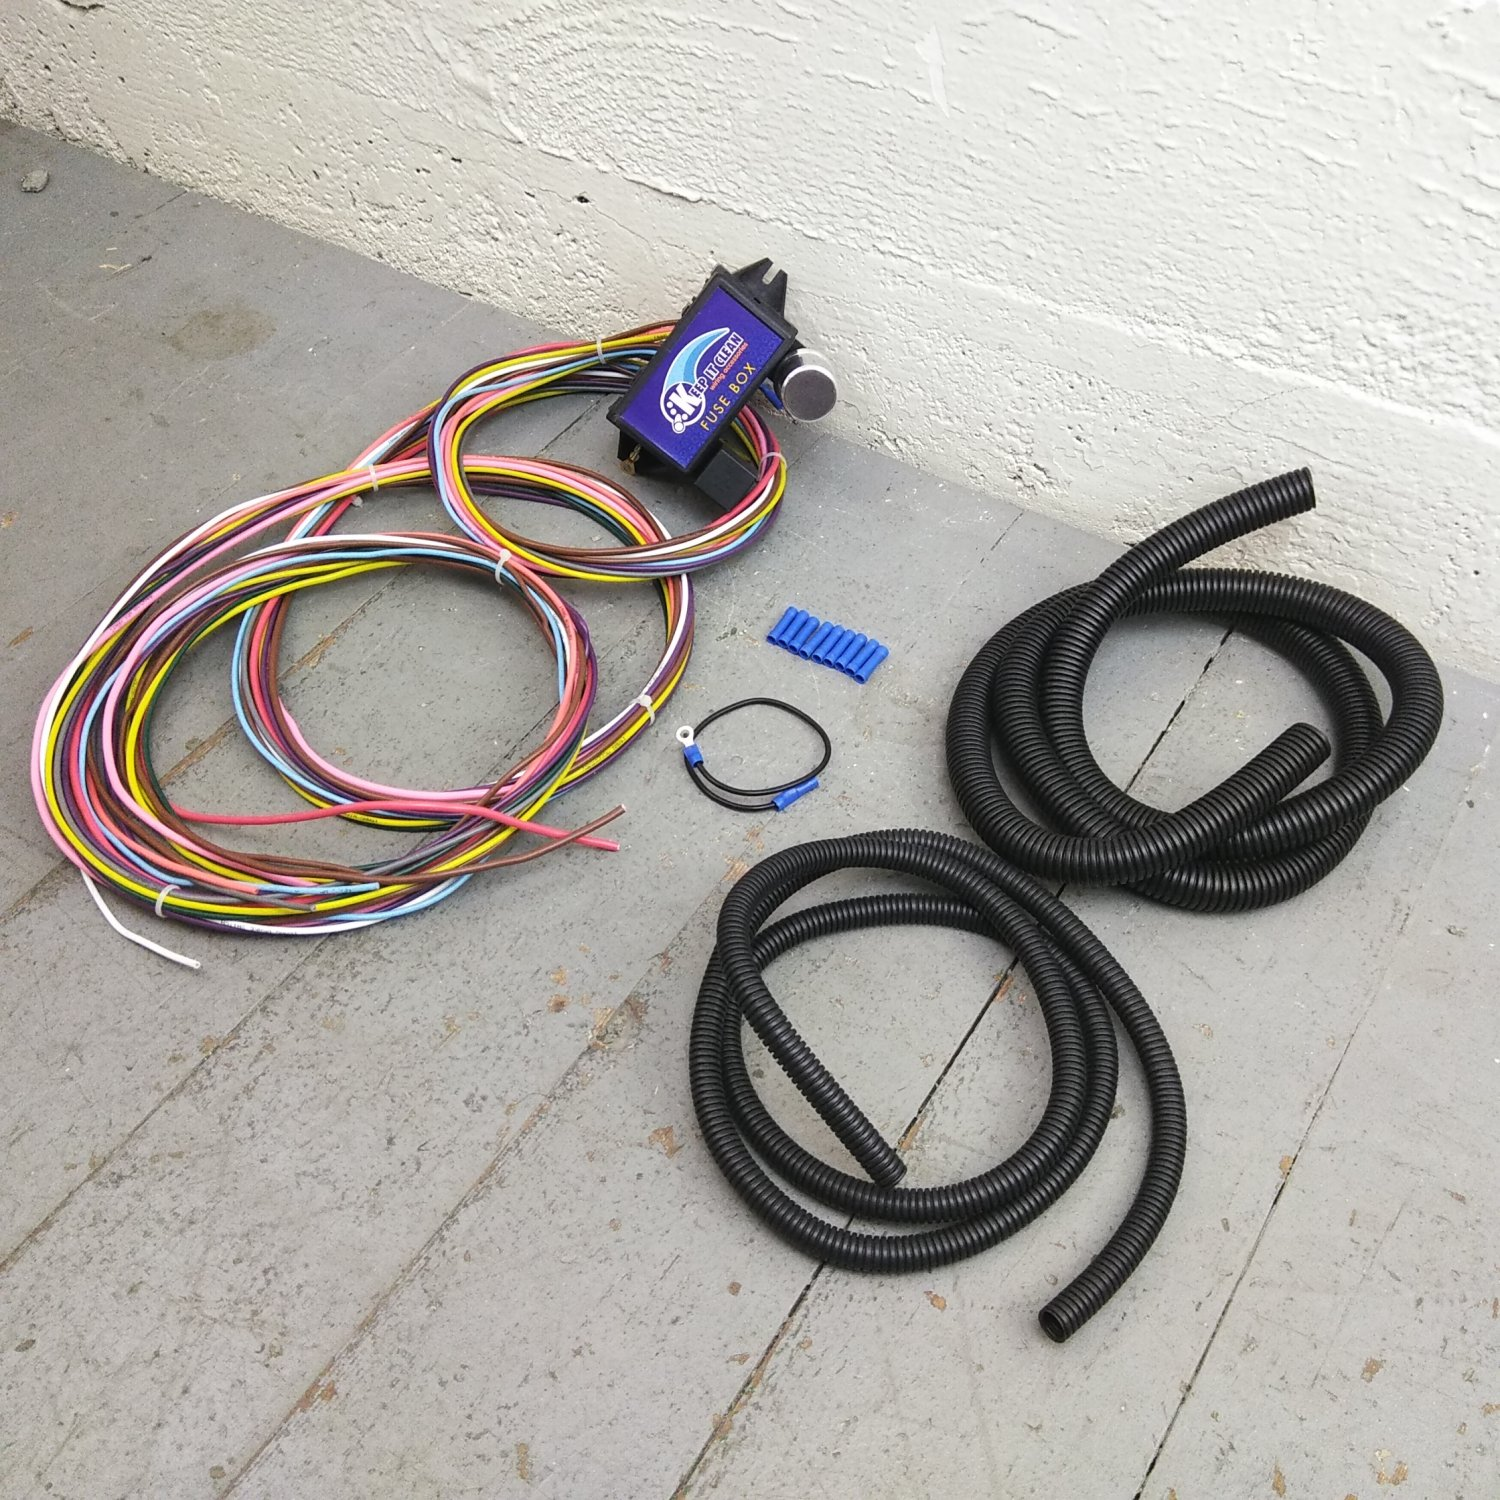 hight resolution of 12v 18 circuit 12 fuse universal wiring harness kit 1934 ford 1949 mercury bar product description c